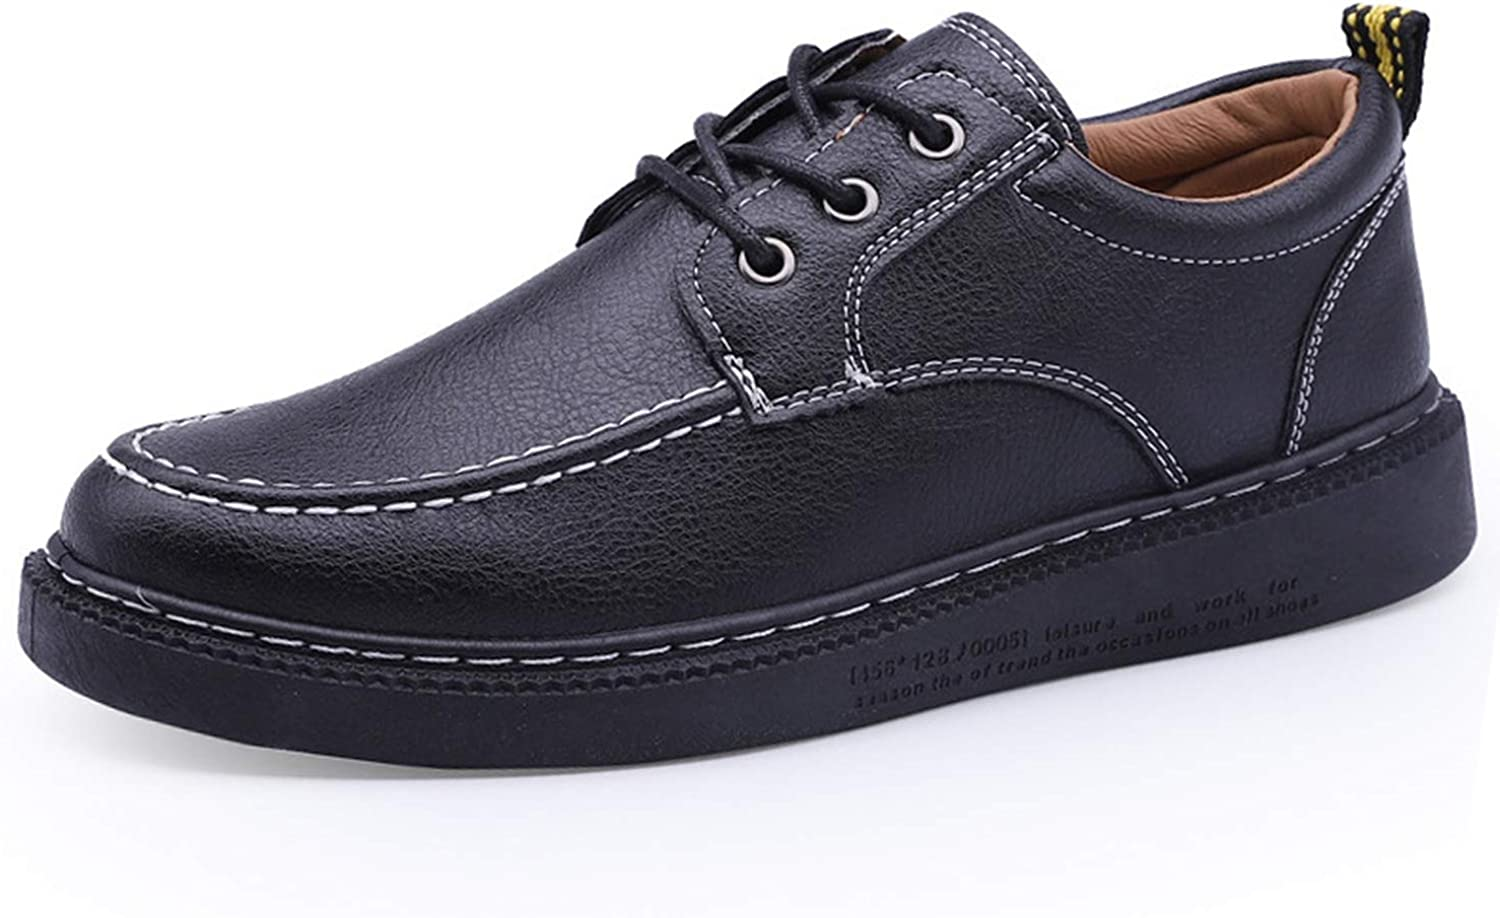 colorful Dream- Mens shoes Thick Sole Solid Design Lace Up Luxury Casual shoes for Men Black Fashions Classic British Tooling Men shoes